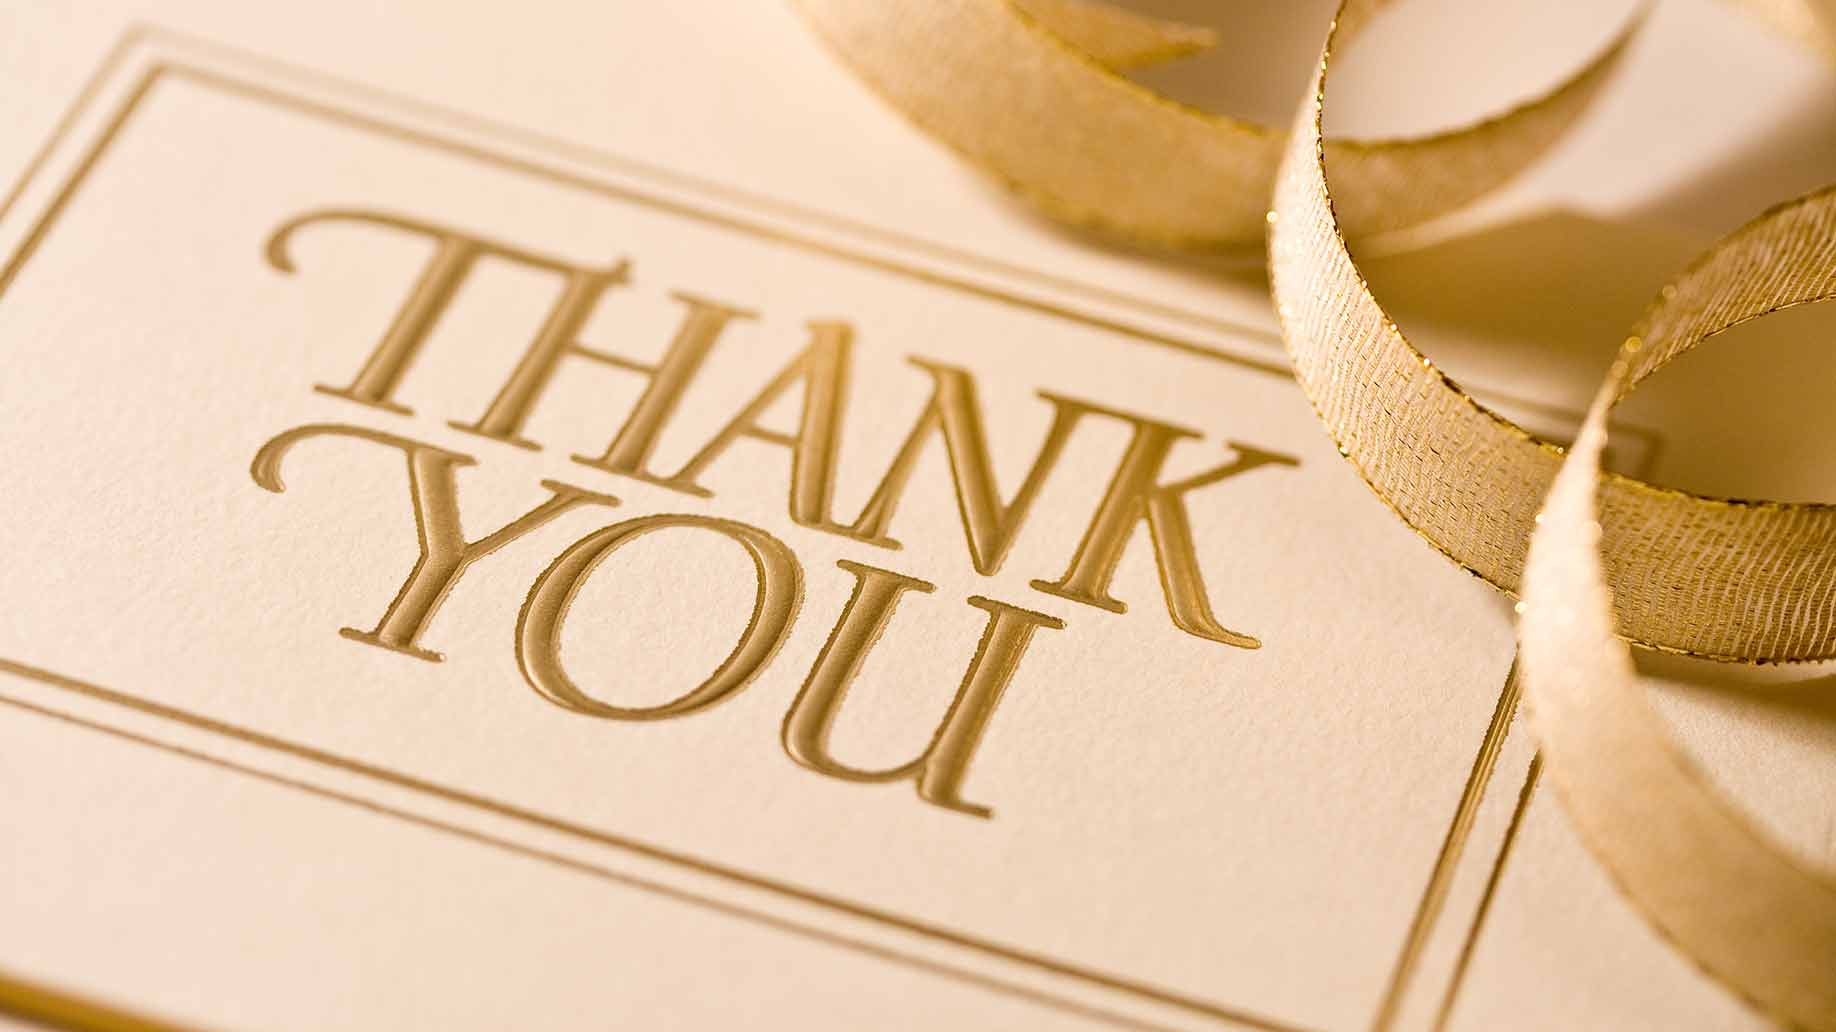 wedding thank you cards cost ideas prices thank you cards wedding How Much Do Wedding Thank You Cards Cost Ideas Prices